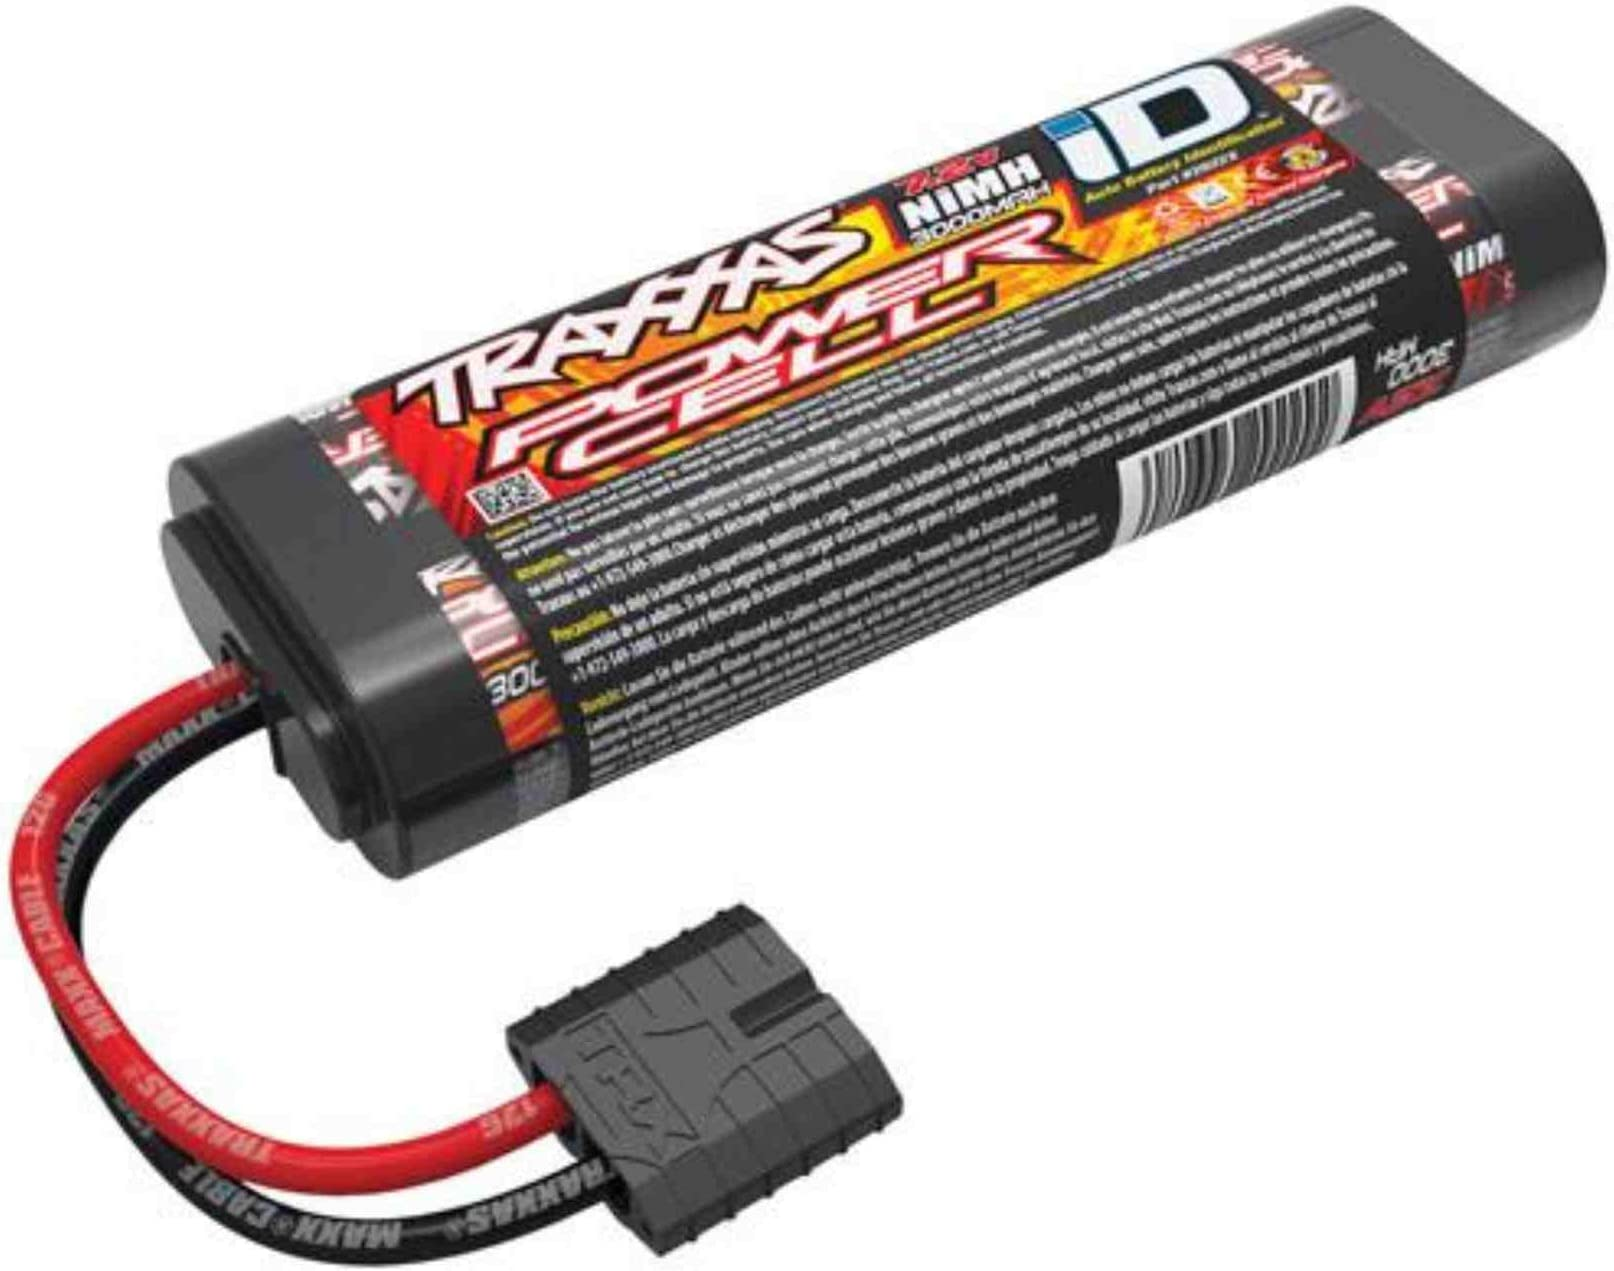 Amazon Com Melasta 8 4v 4200mah 7 Cell Hump Nimh Battery Pack With Traxxas Discharge Plug For Rc Racing Car Electronics